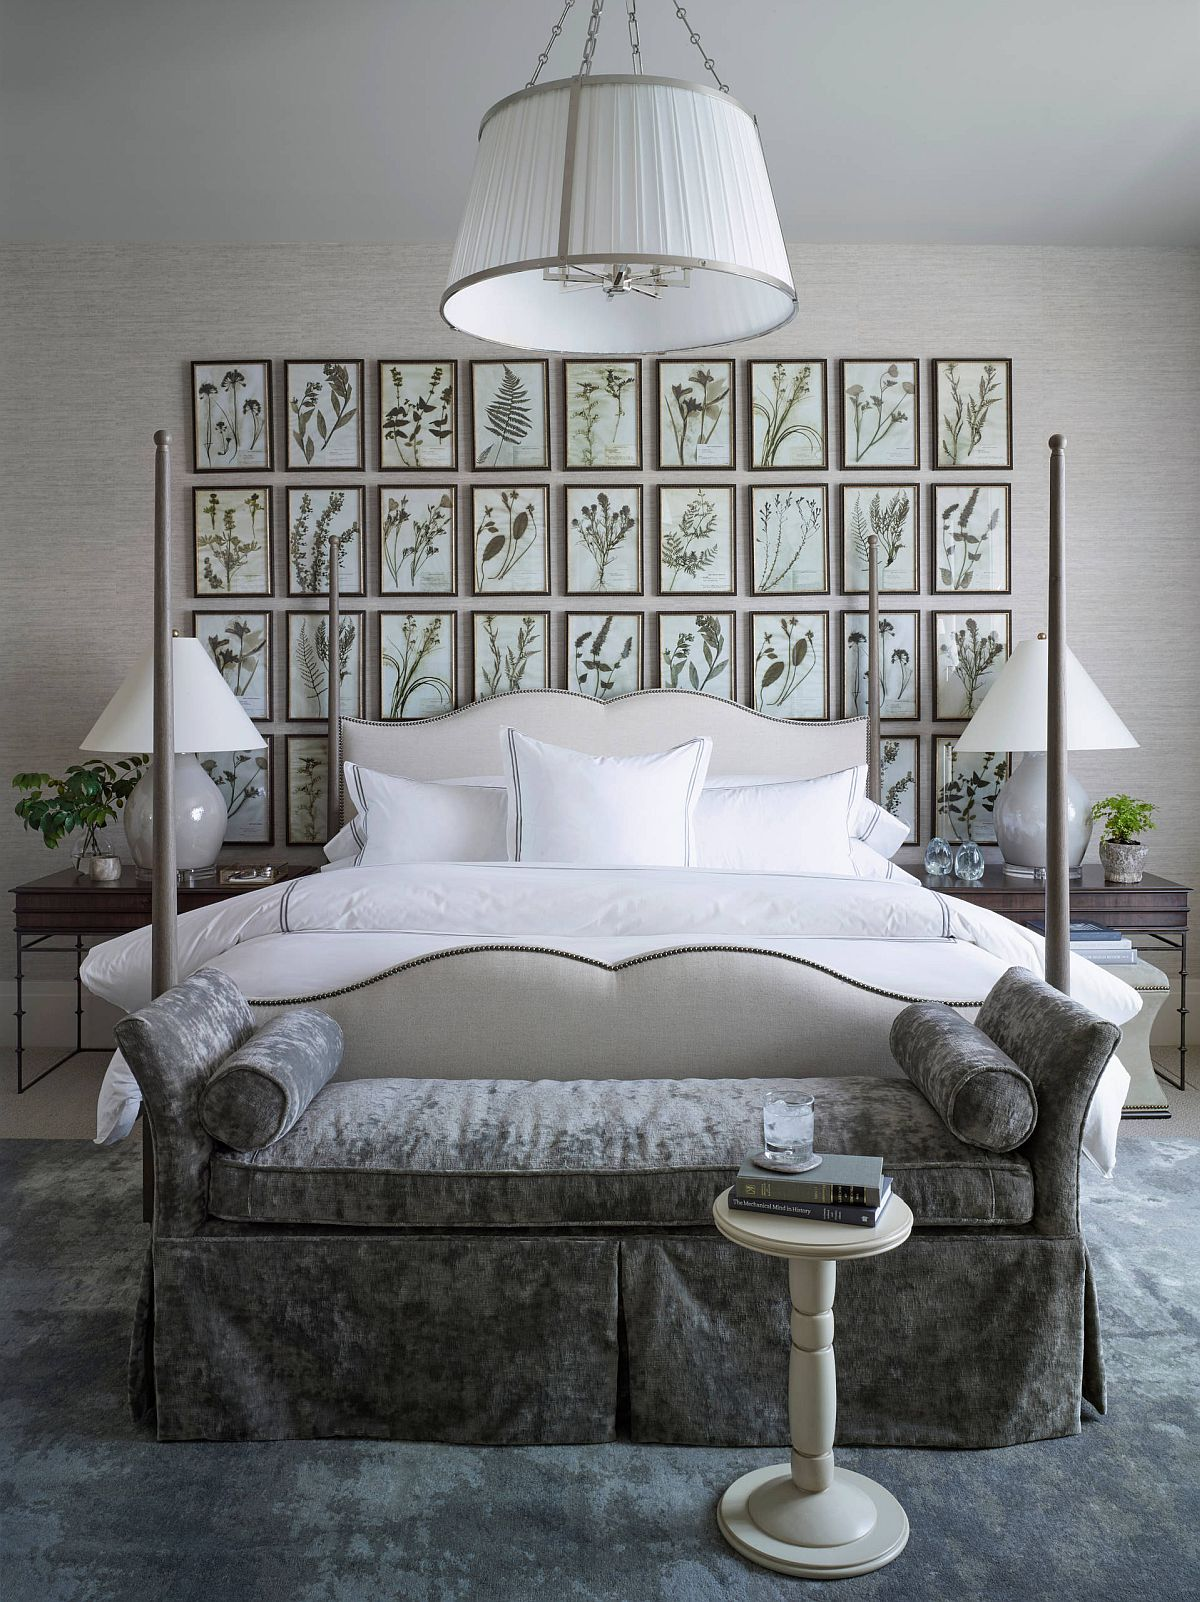 Stunning-gallery-wall-in-the-bedroom-created-using-just-botanical-prints-18365